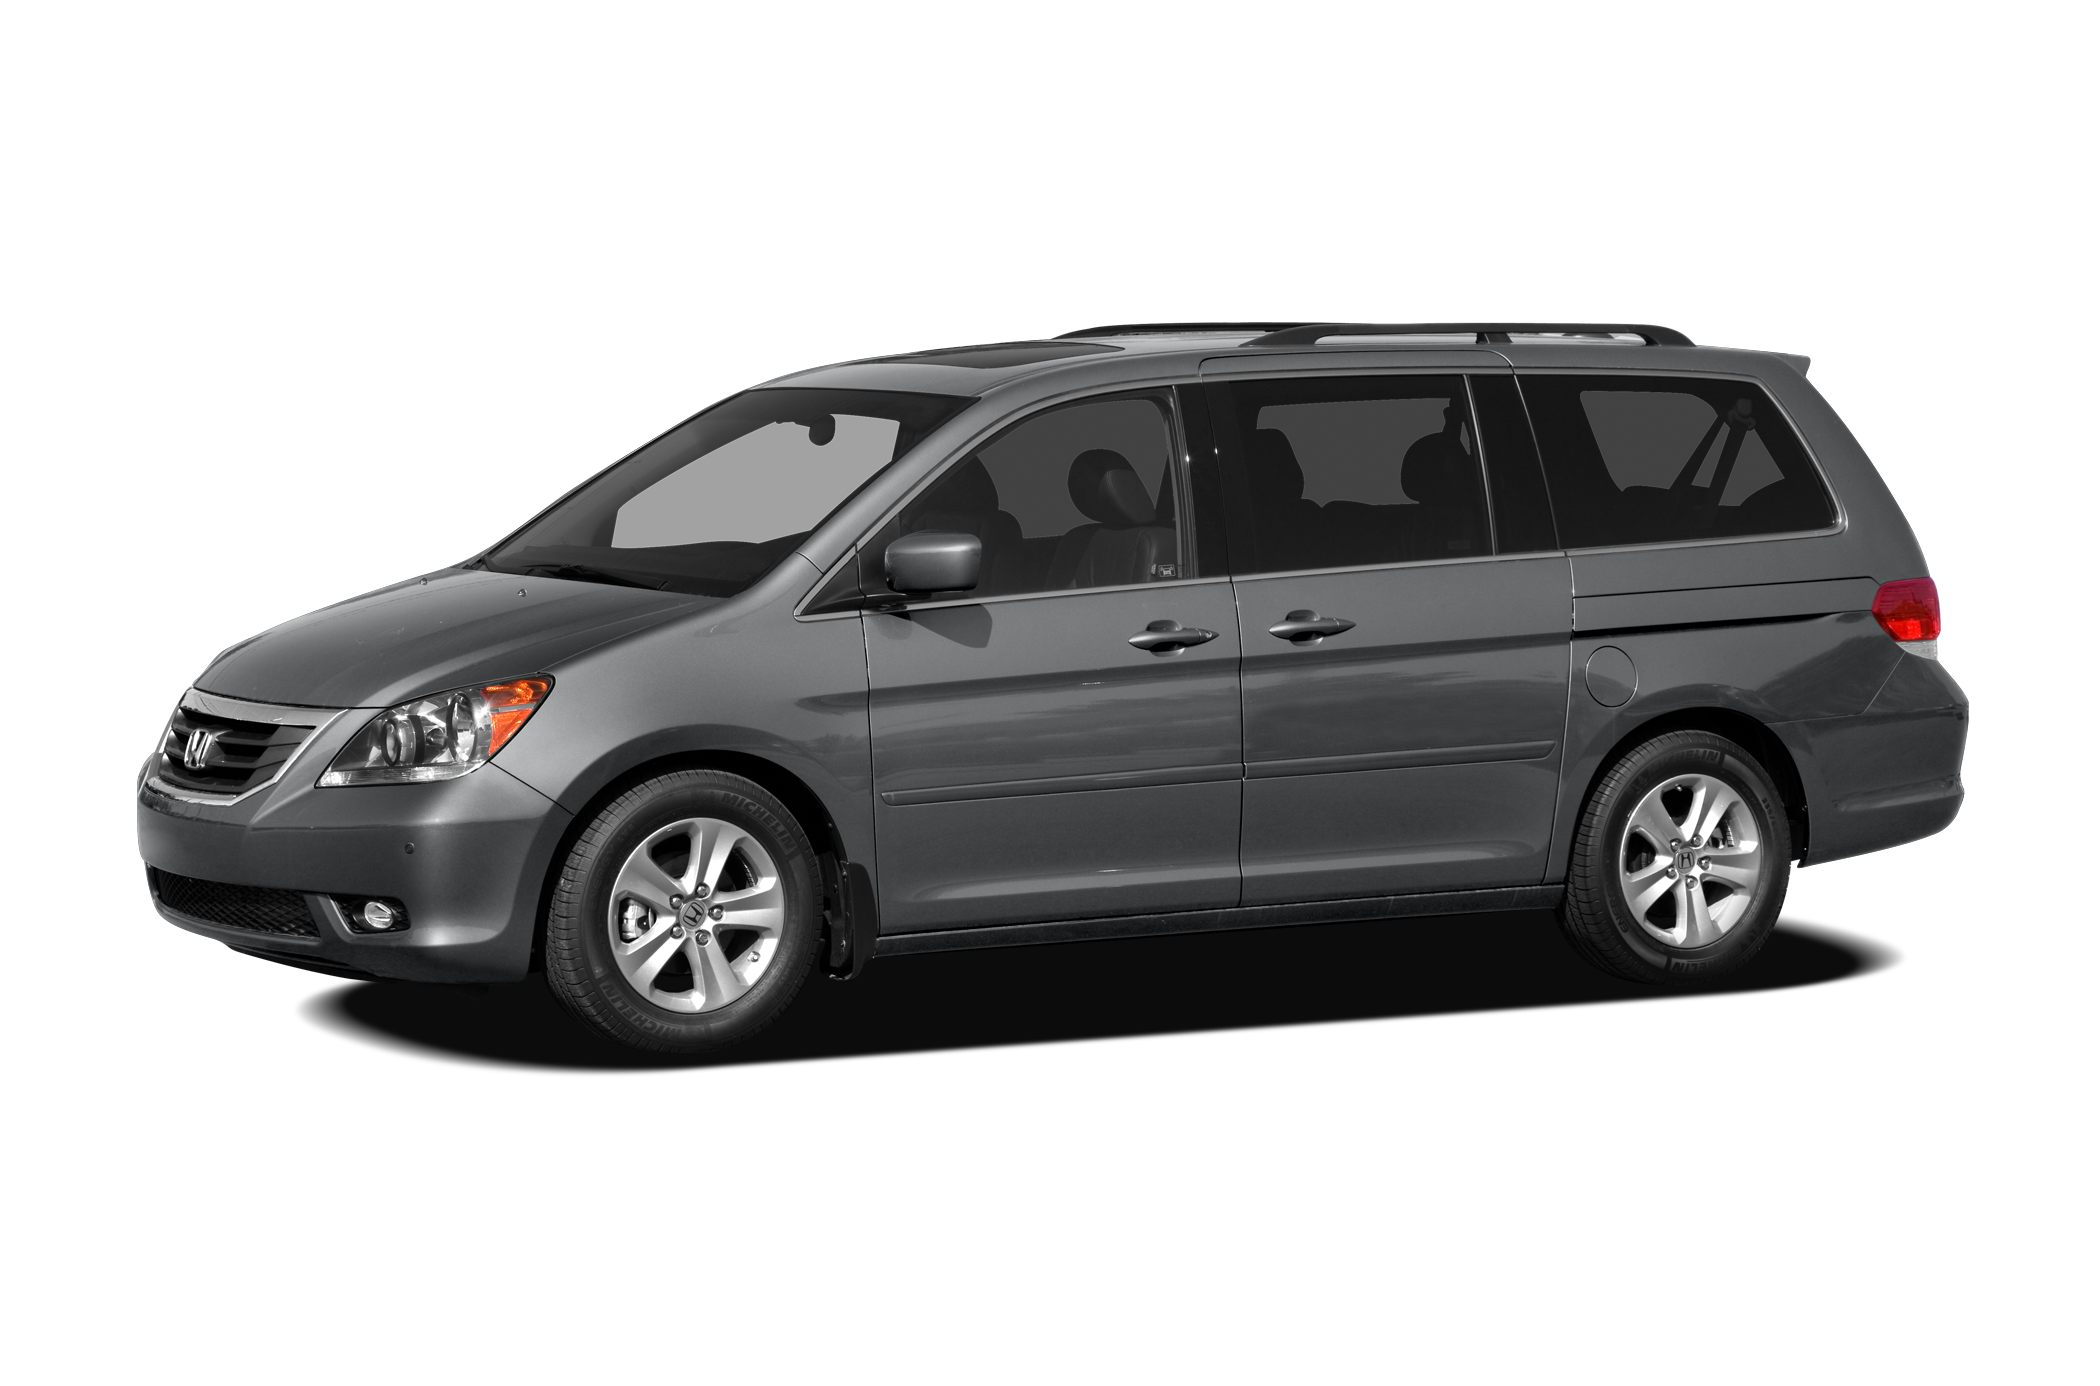 2008 Honda Odyssey Touring w RES Navigation Snatch a bargain on this 2008 Honda Odyssey Touring